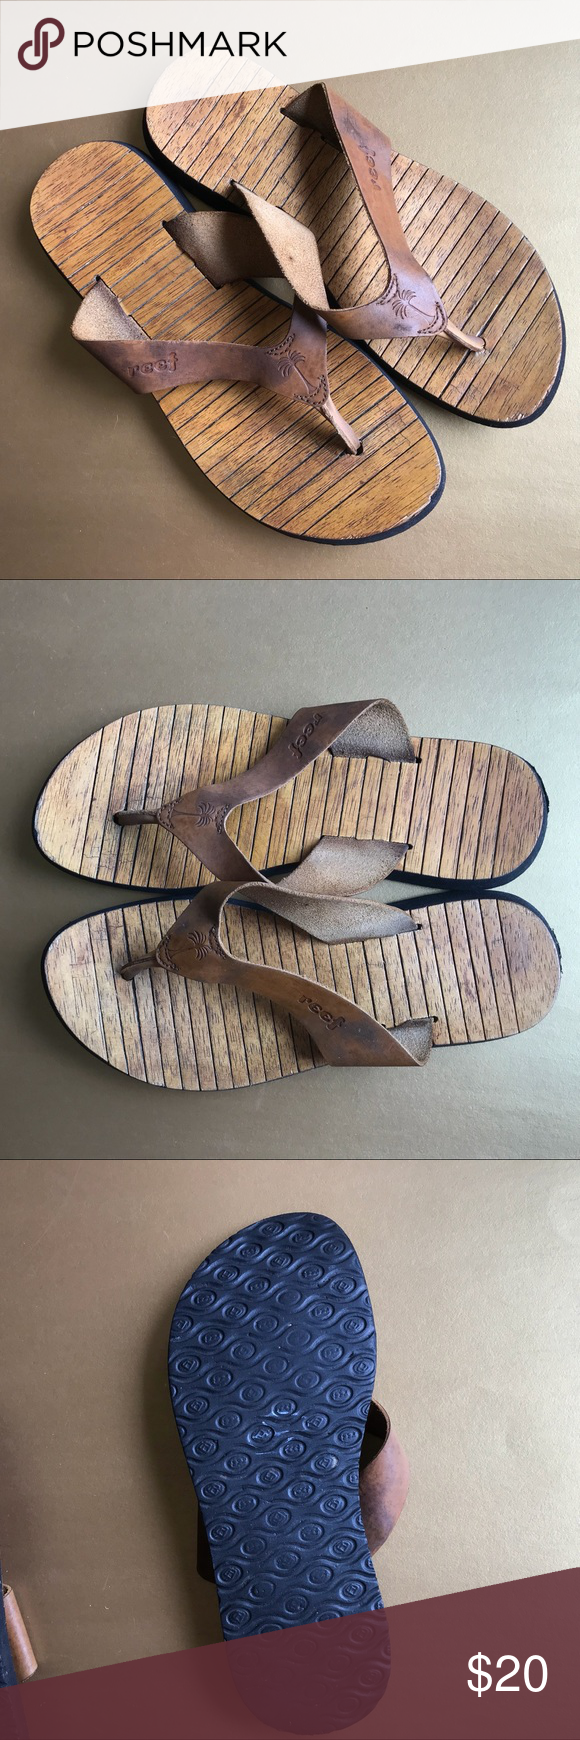 6e7e83f23f2f Old School Reef Sandals Remember these    Old school sandals...worn in  leather and comfy. Reef Shoes Sandals